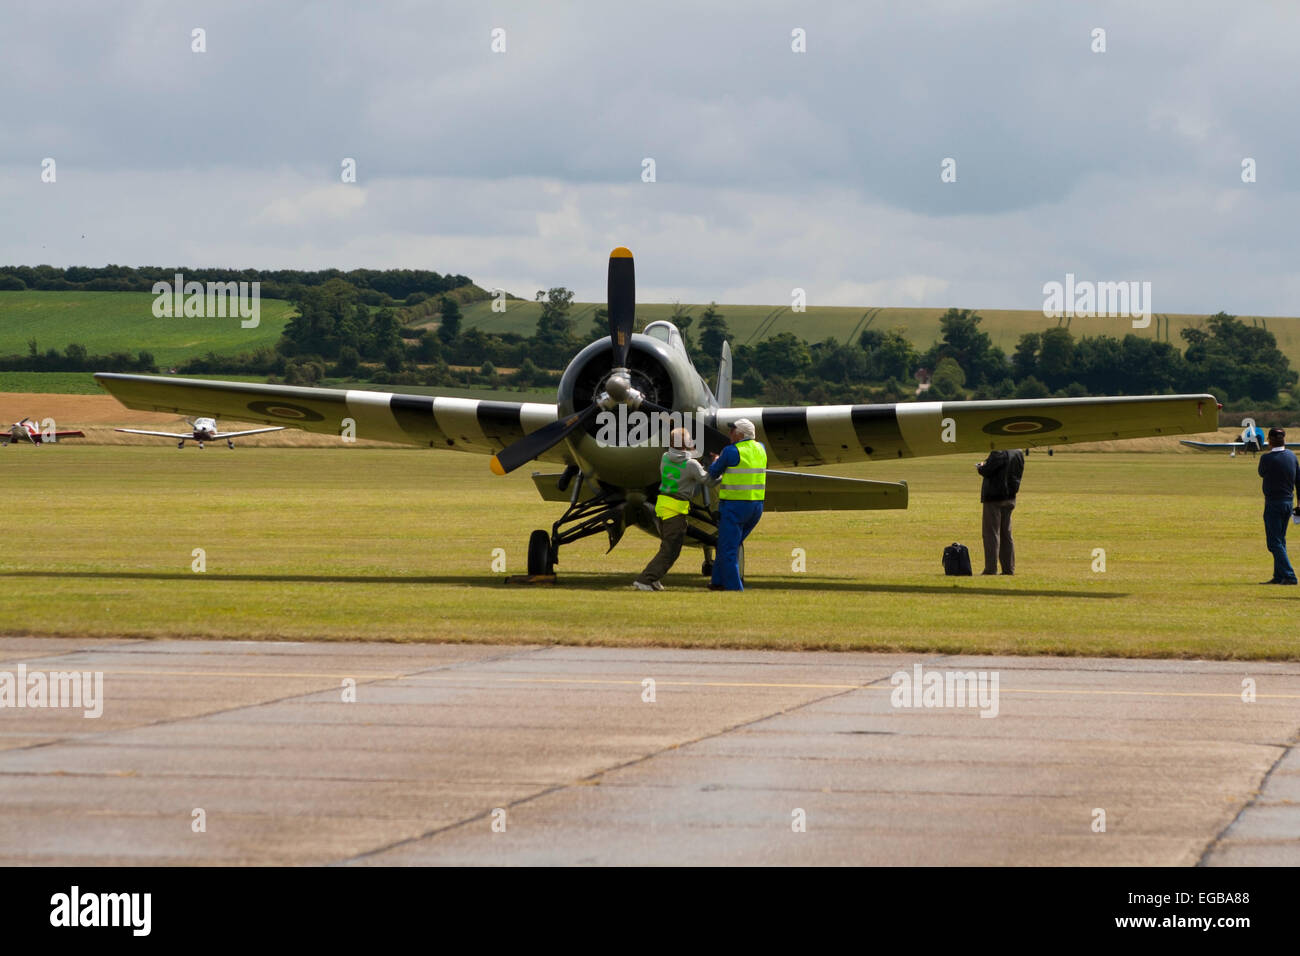 Spin Prop Stock Photos & Spin Prop Stock Images - Alamy